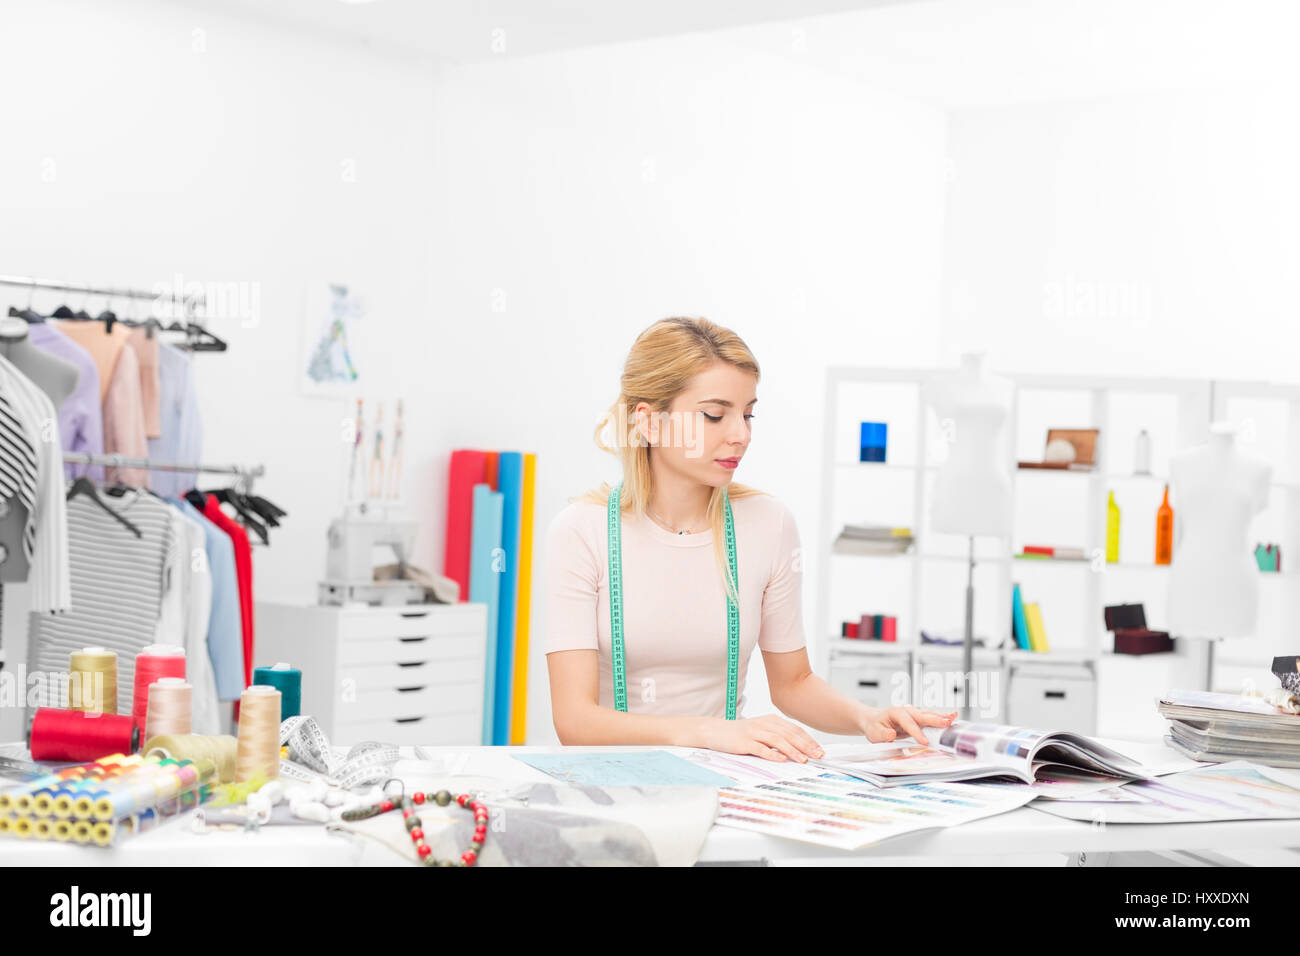 young fashion designer sitting at the desk in her workshop looking throught magazines - Stock Image